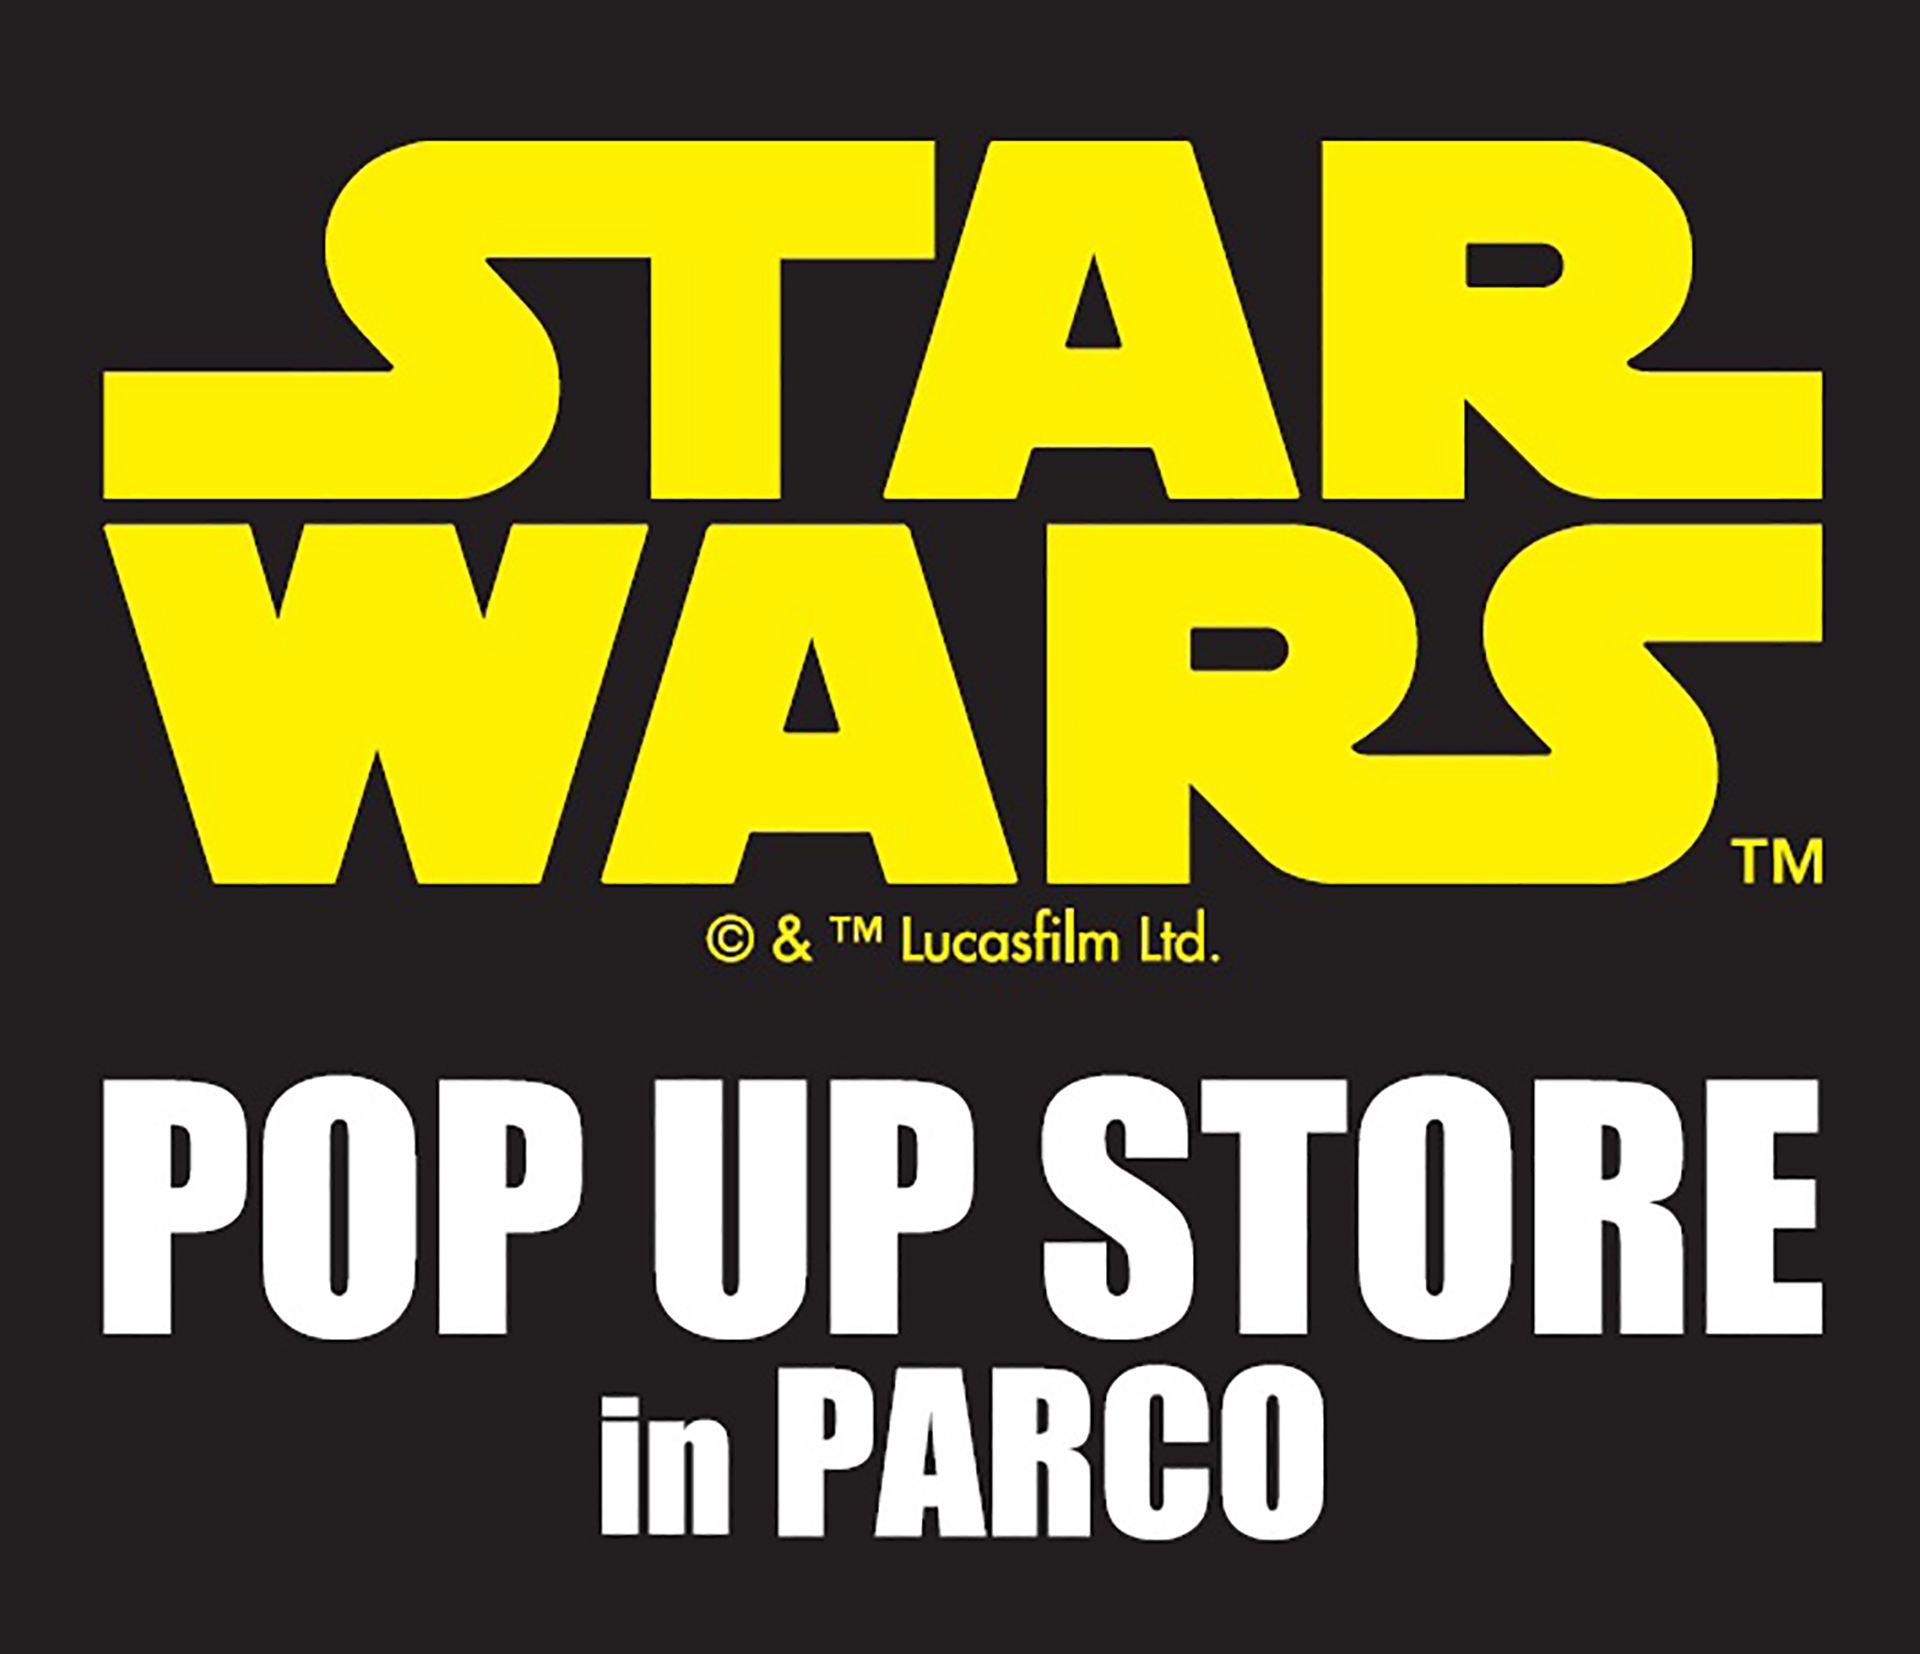 STAR WARS POP UP STORE in PARCOバナー